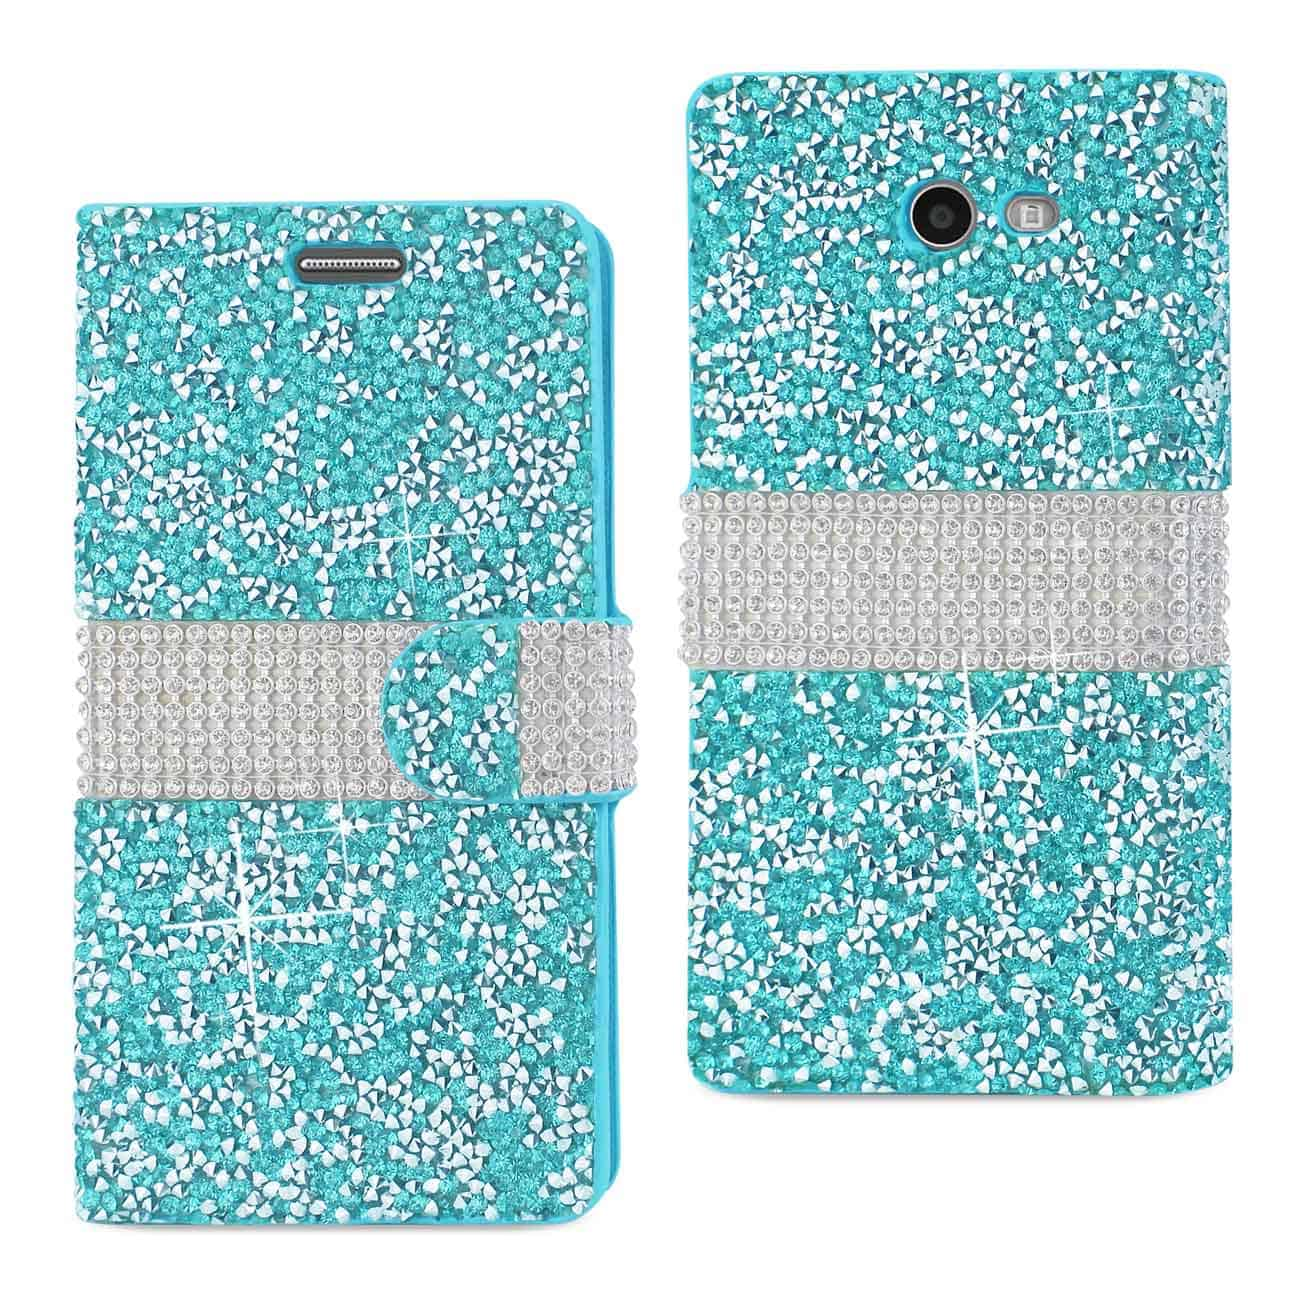 Samsung Galaxy J3 Emerge Diamond Rhinestone Wallet Case In Blue